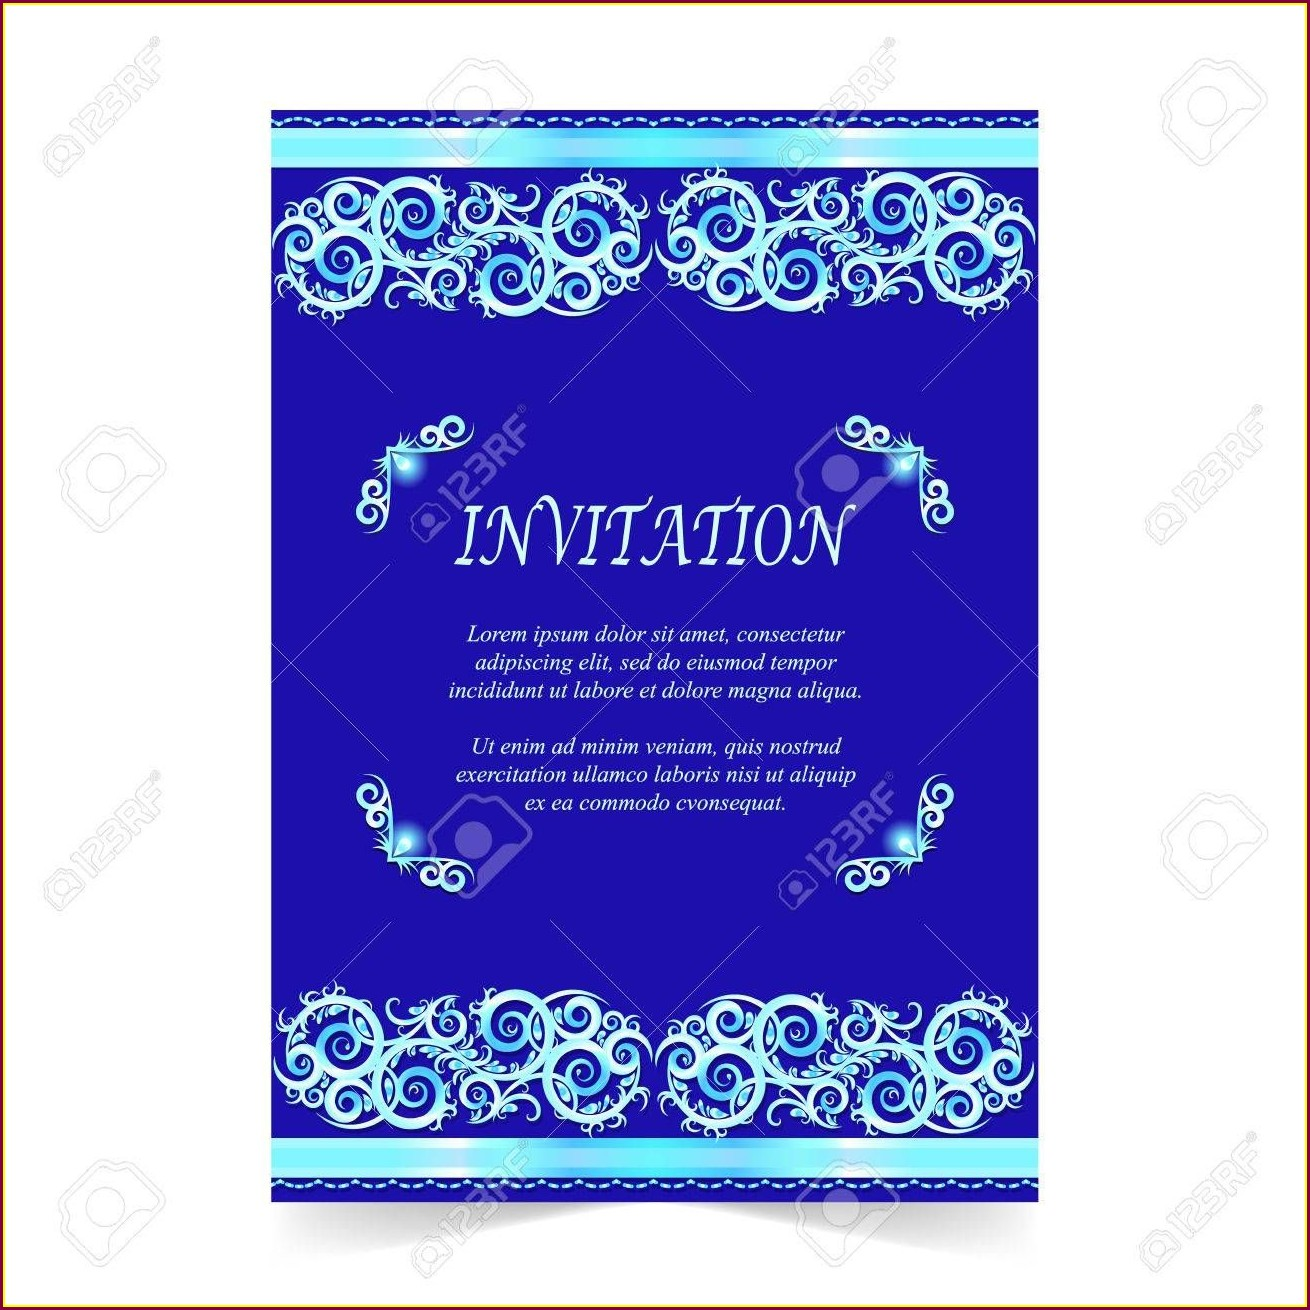 Royal Blue Wedding Invitations Background Design